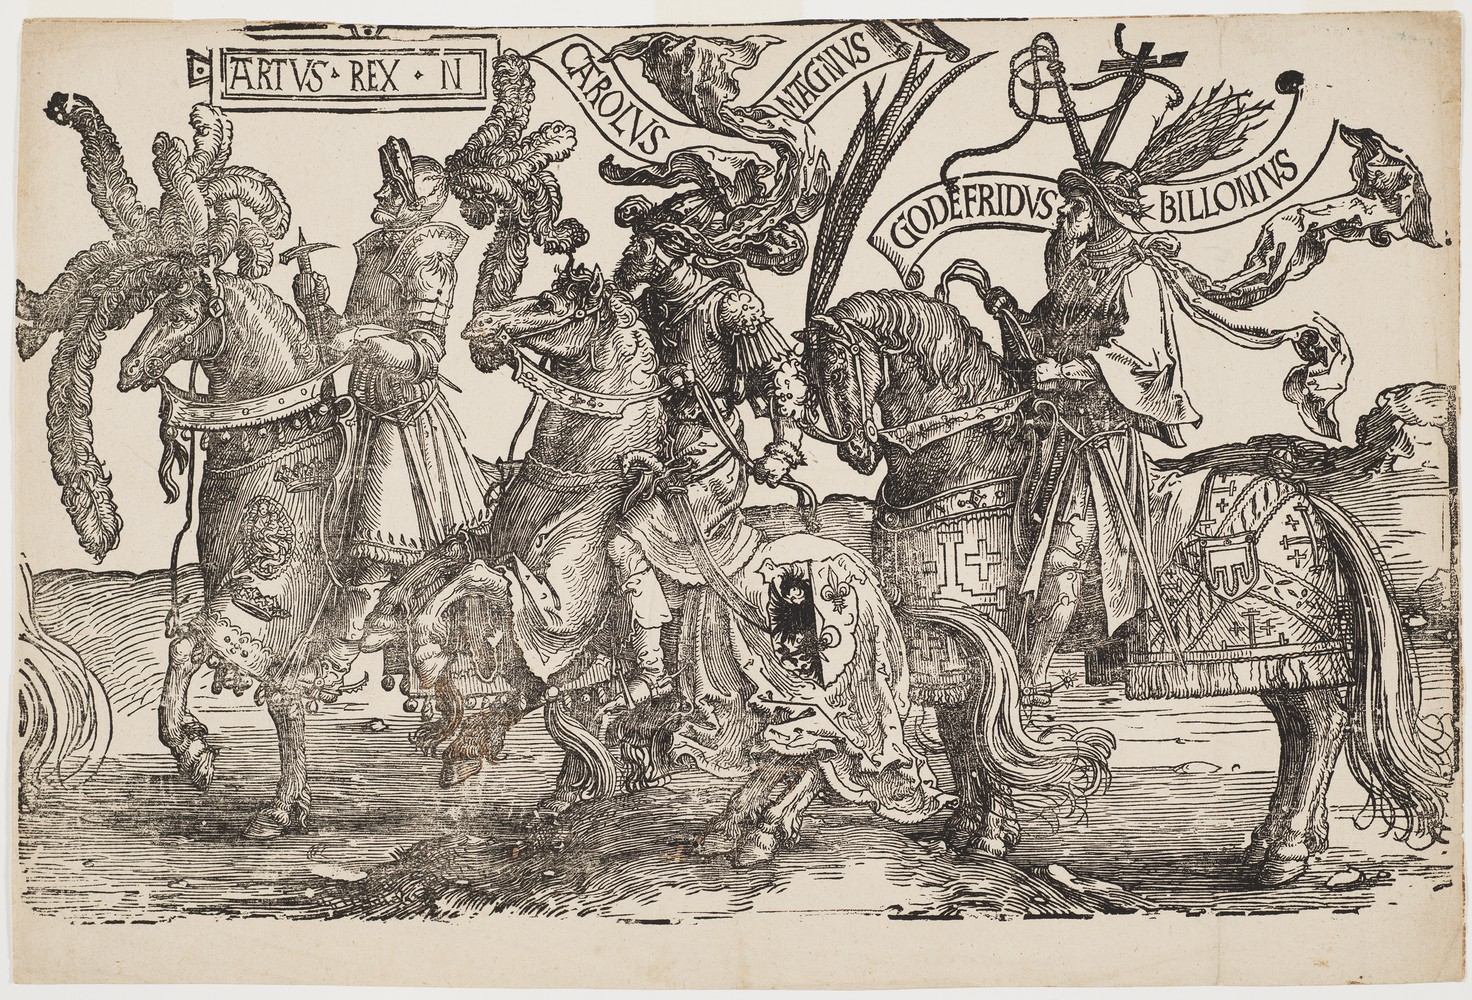 Arthus, Charles the Great (Charlemagne), Godfrey of Bouillon (the Christian heroes on horseback), cr. 1520, Lucas van Leyden, Amsterdam, Netherlands